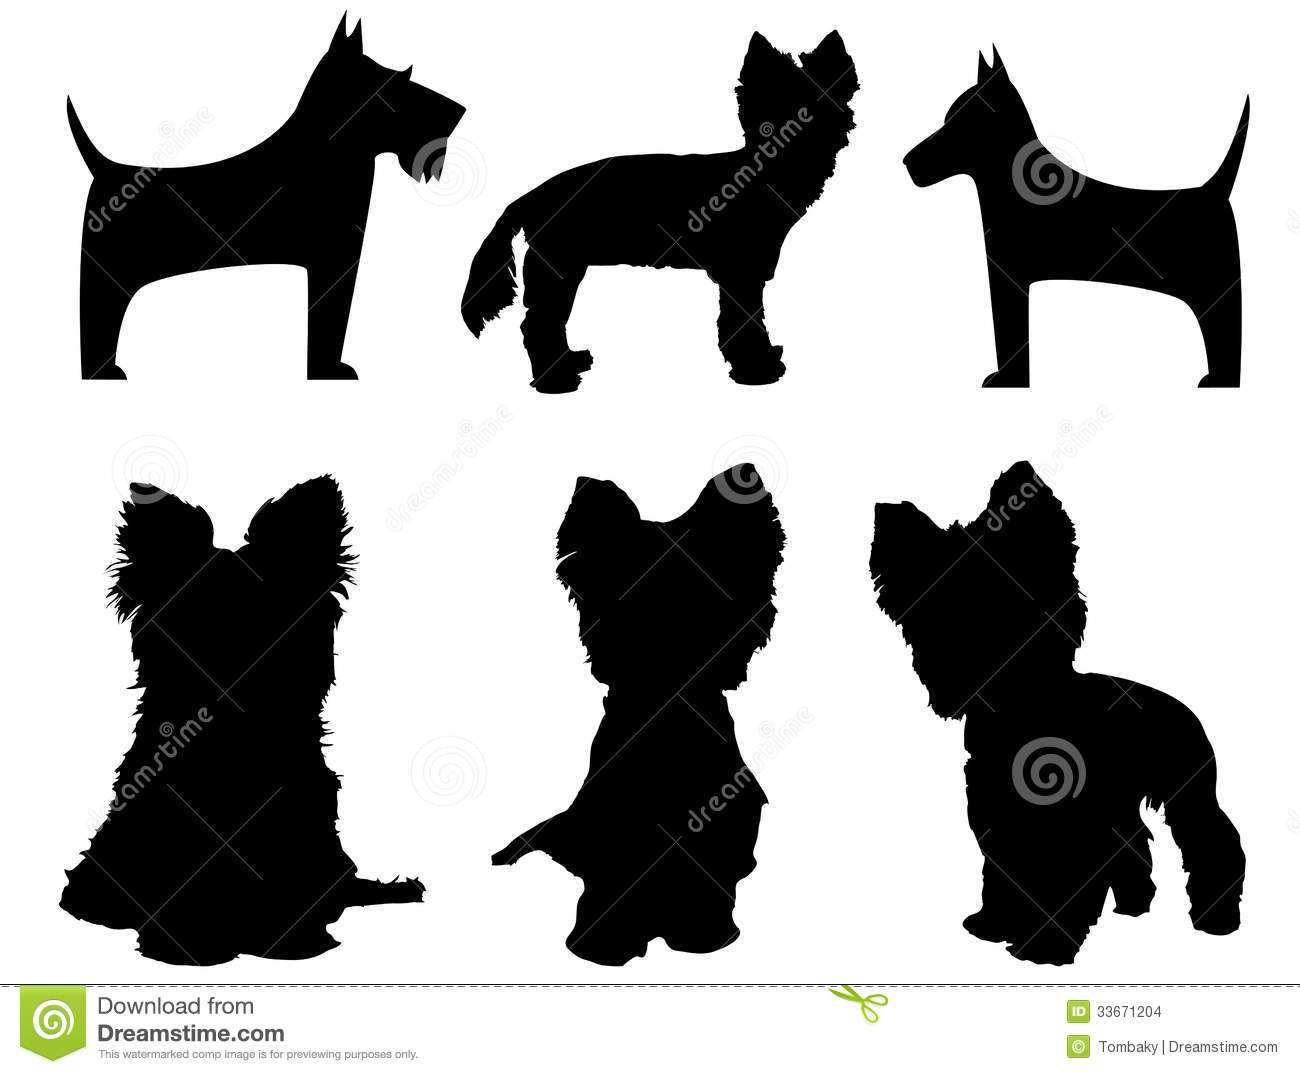 Terrier clipart #8, Download drawings